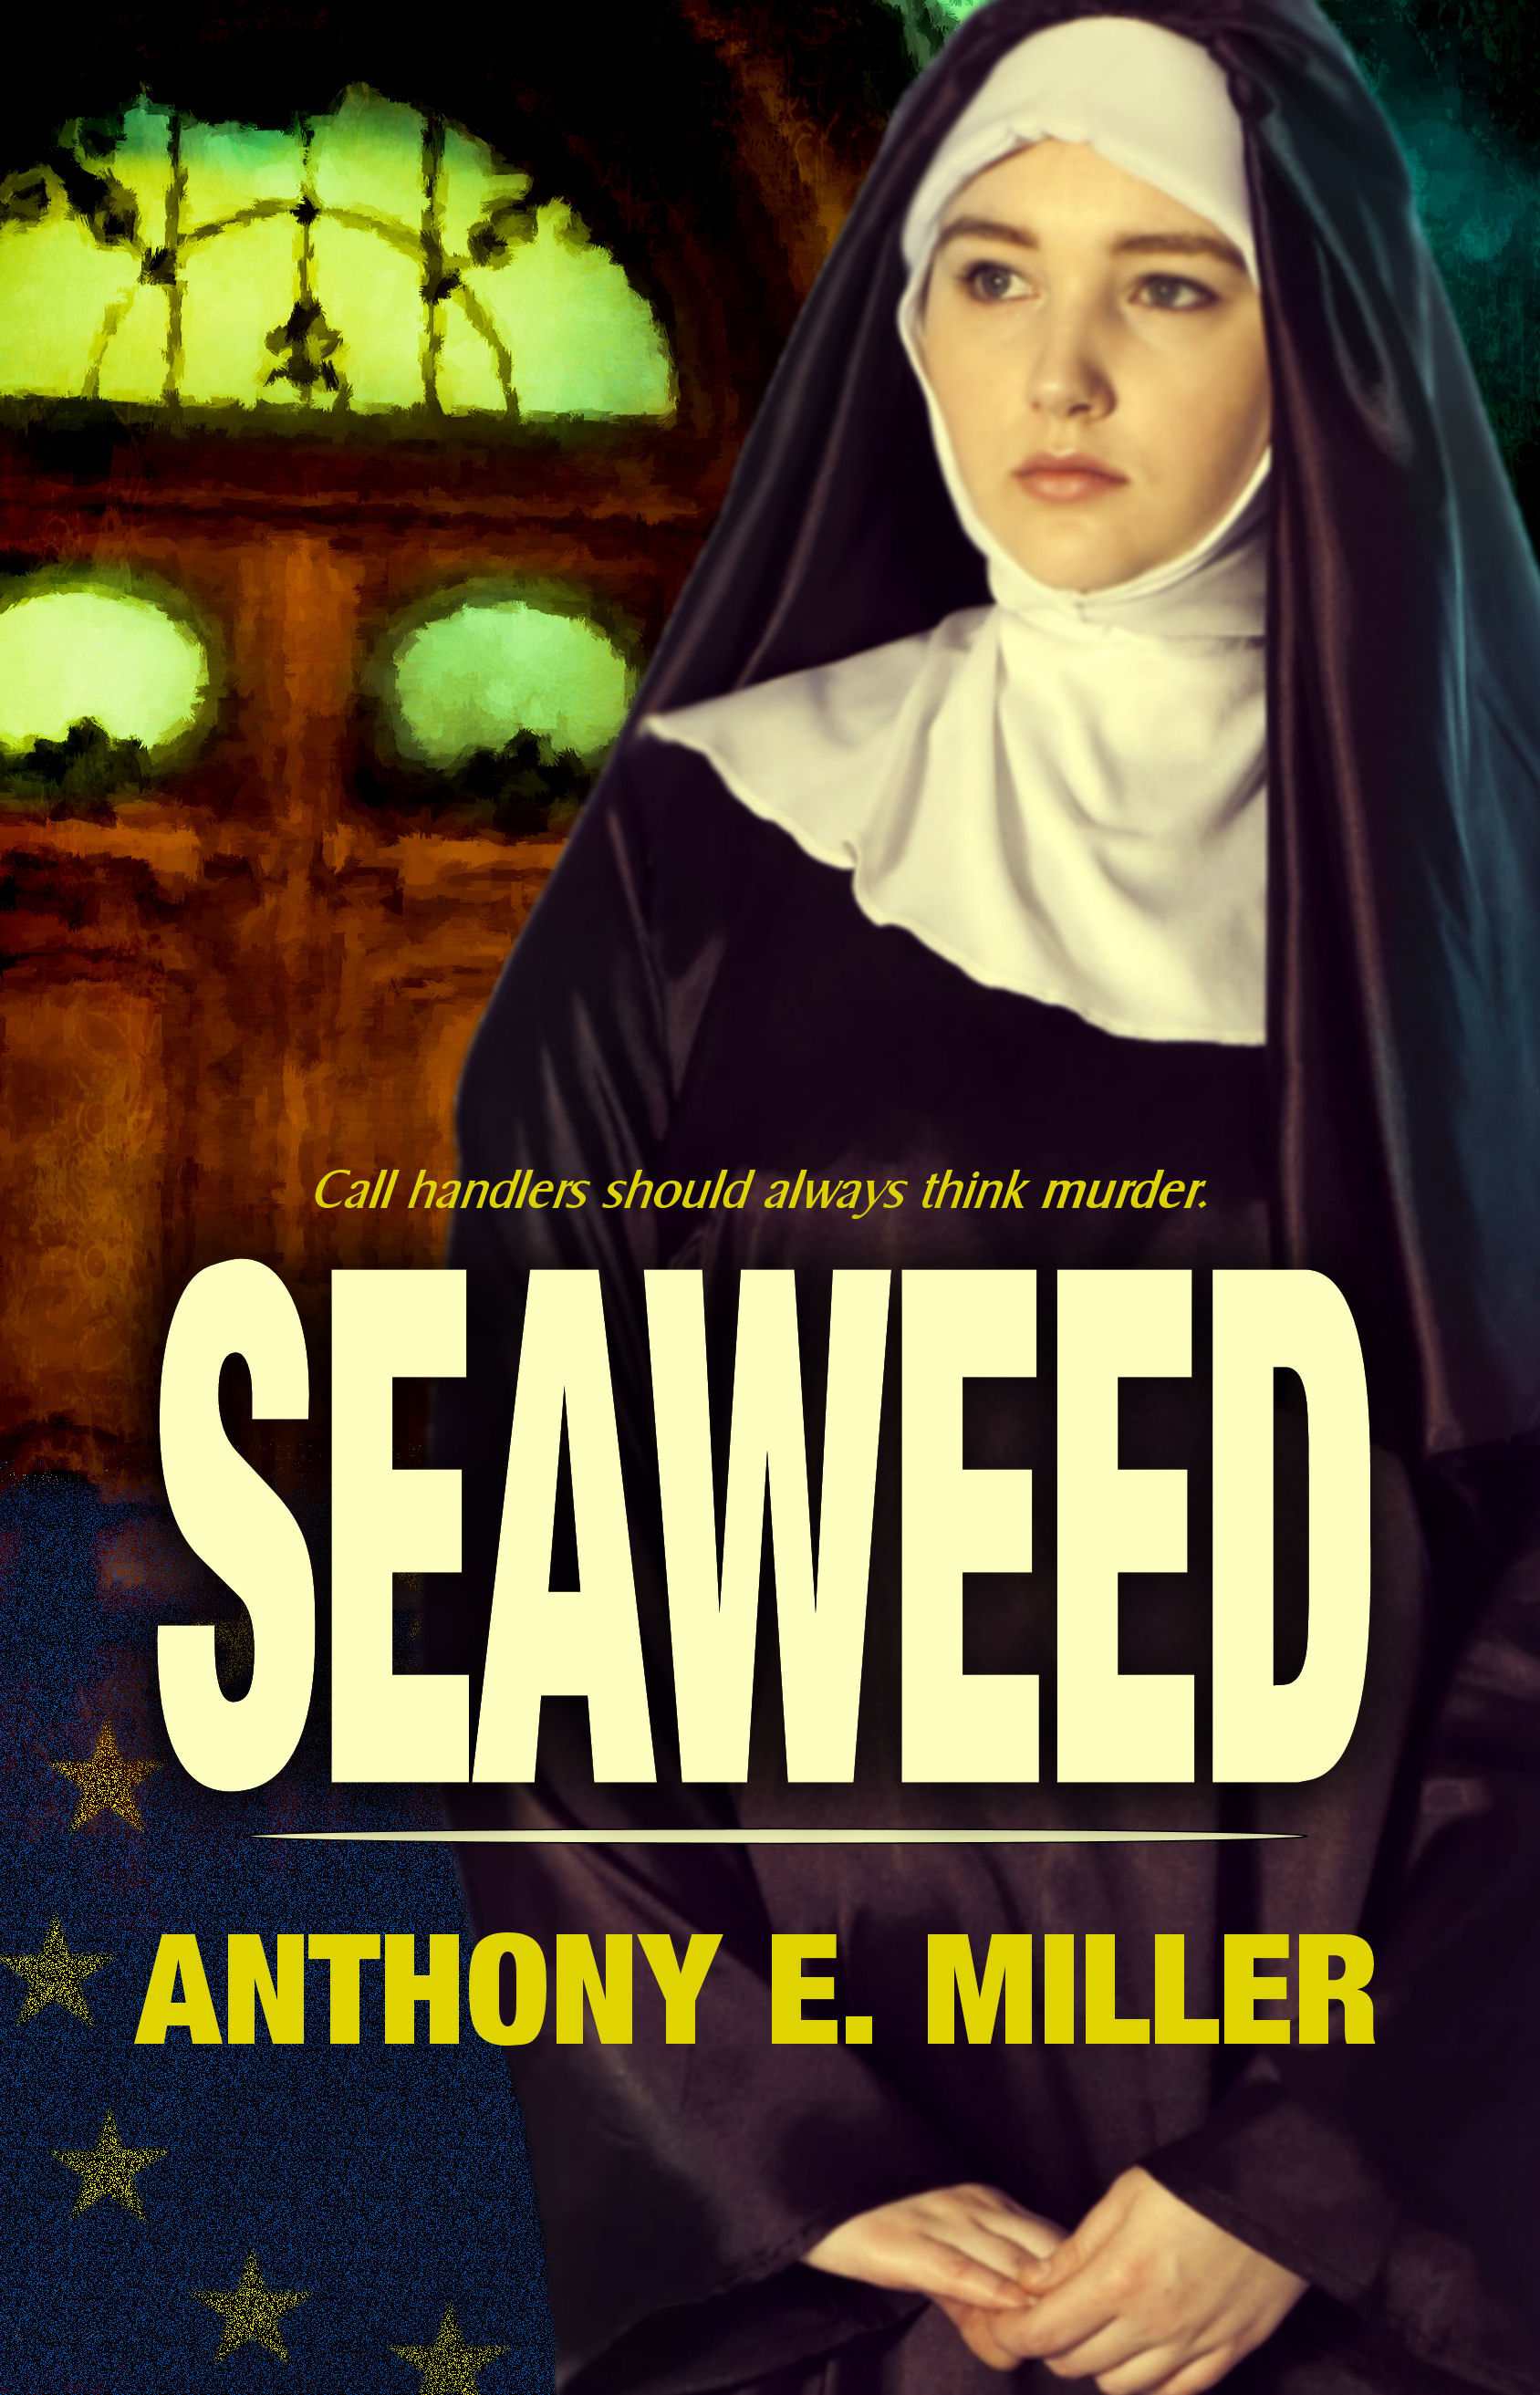 Seaweed. A book by Anthony E. Miller